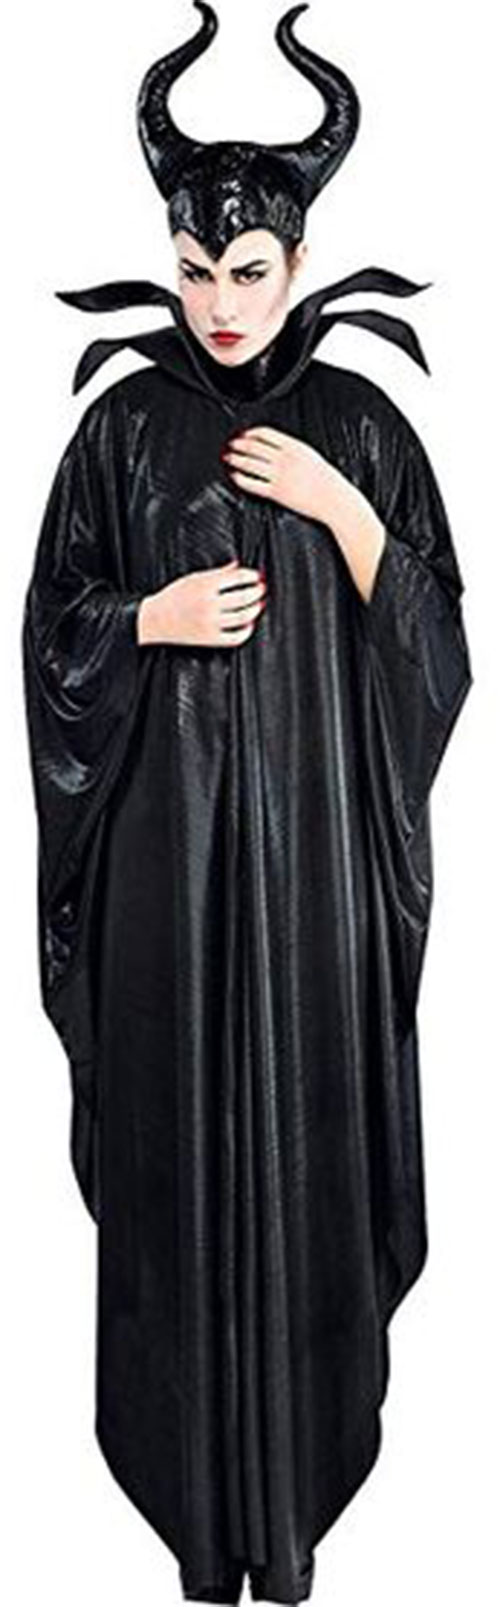 Witch-Halloween-Costumes-For-Kids-Girls-Women-2019-10